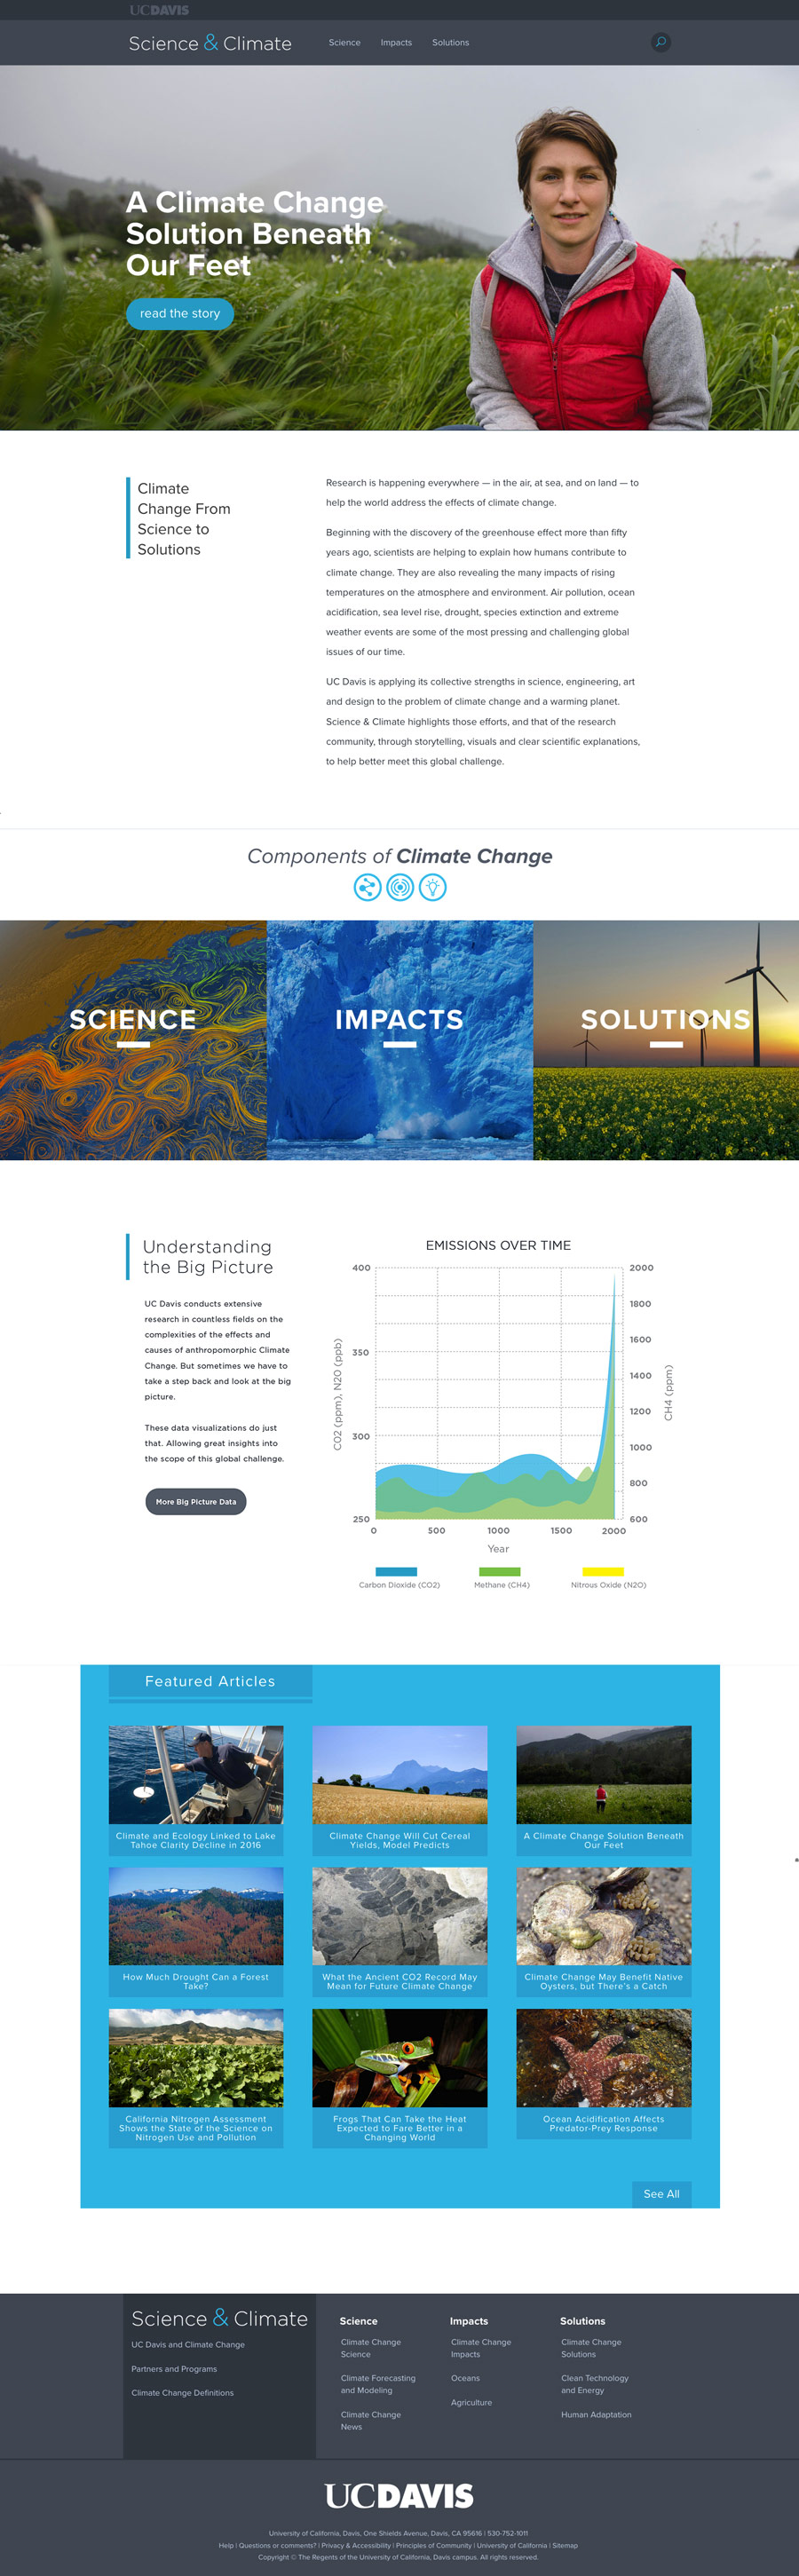 UC Davis Science and Climate homepage